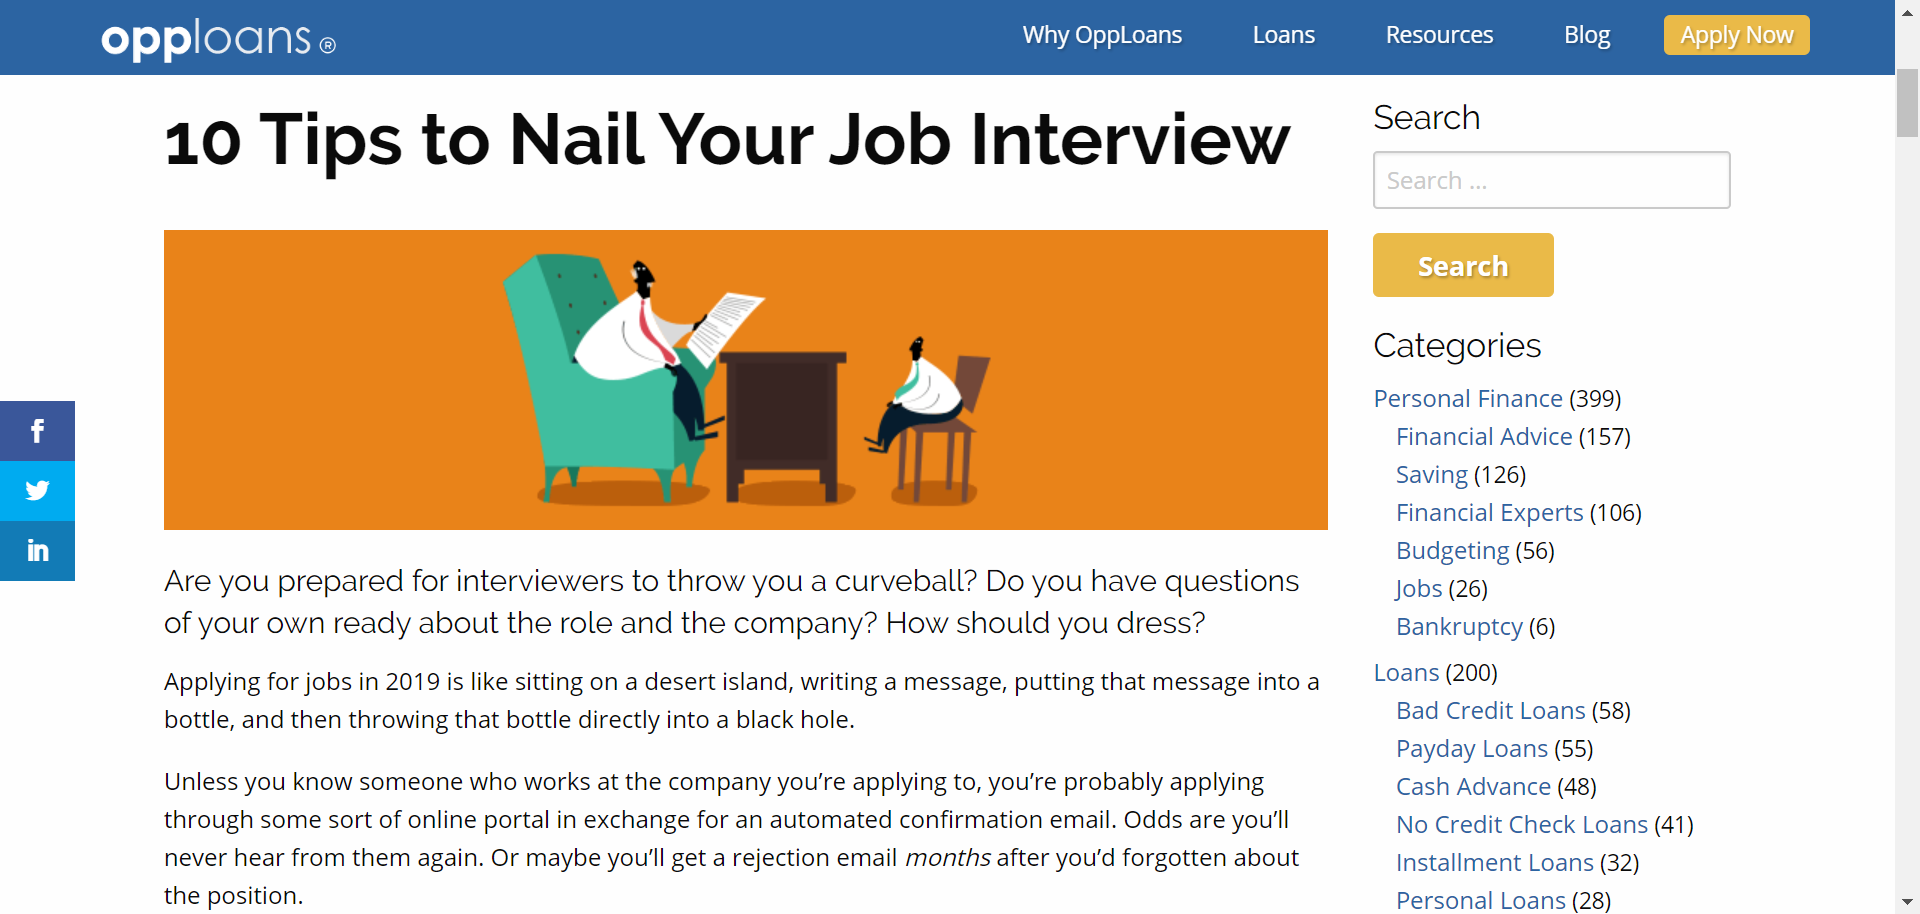 Susan comments on how to succeed in a job interview